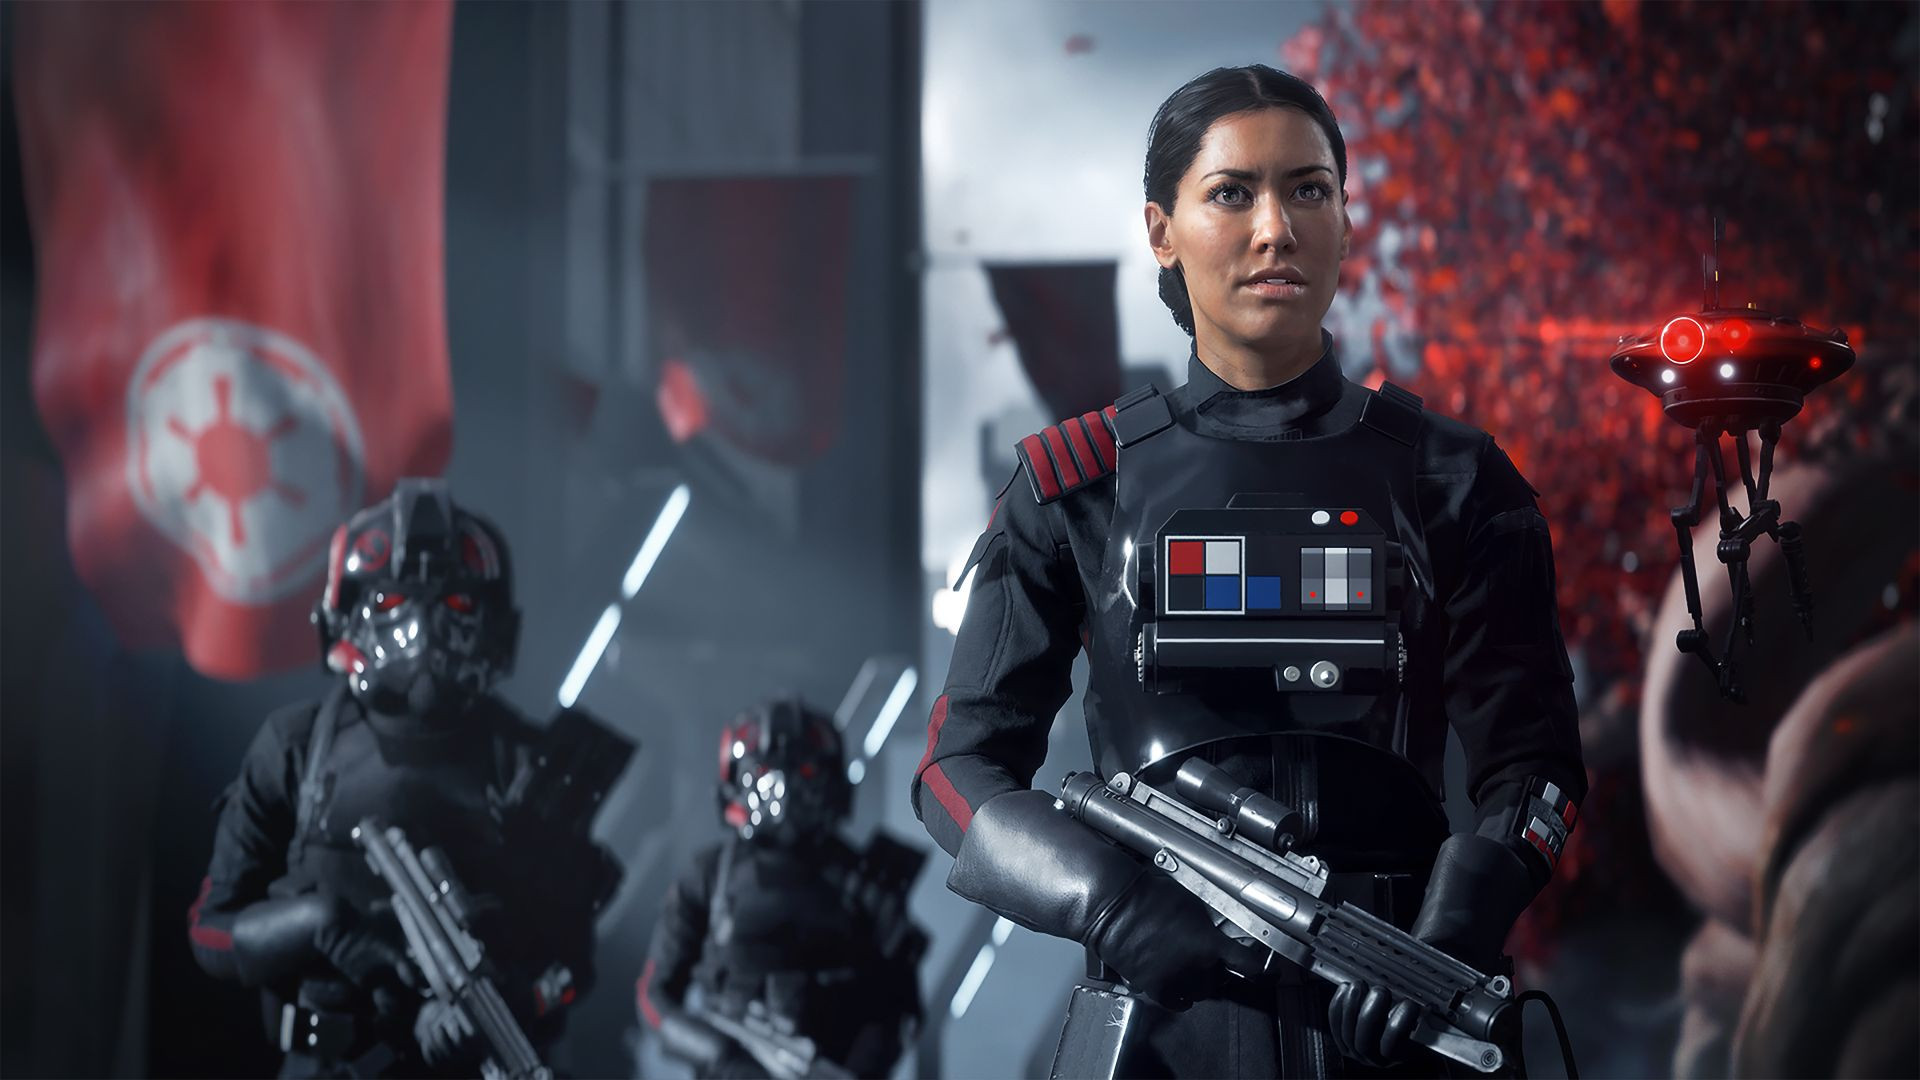 Photo of Grinding 40 Hours In Star Wars: Battlefront II To Get Darth Vader or Luke Sounds Crazy